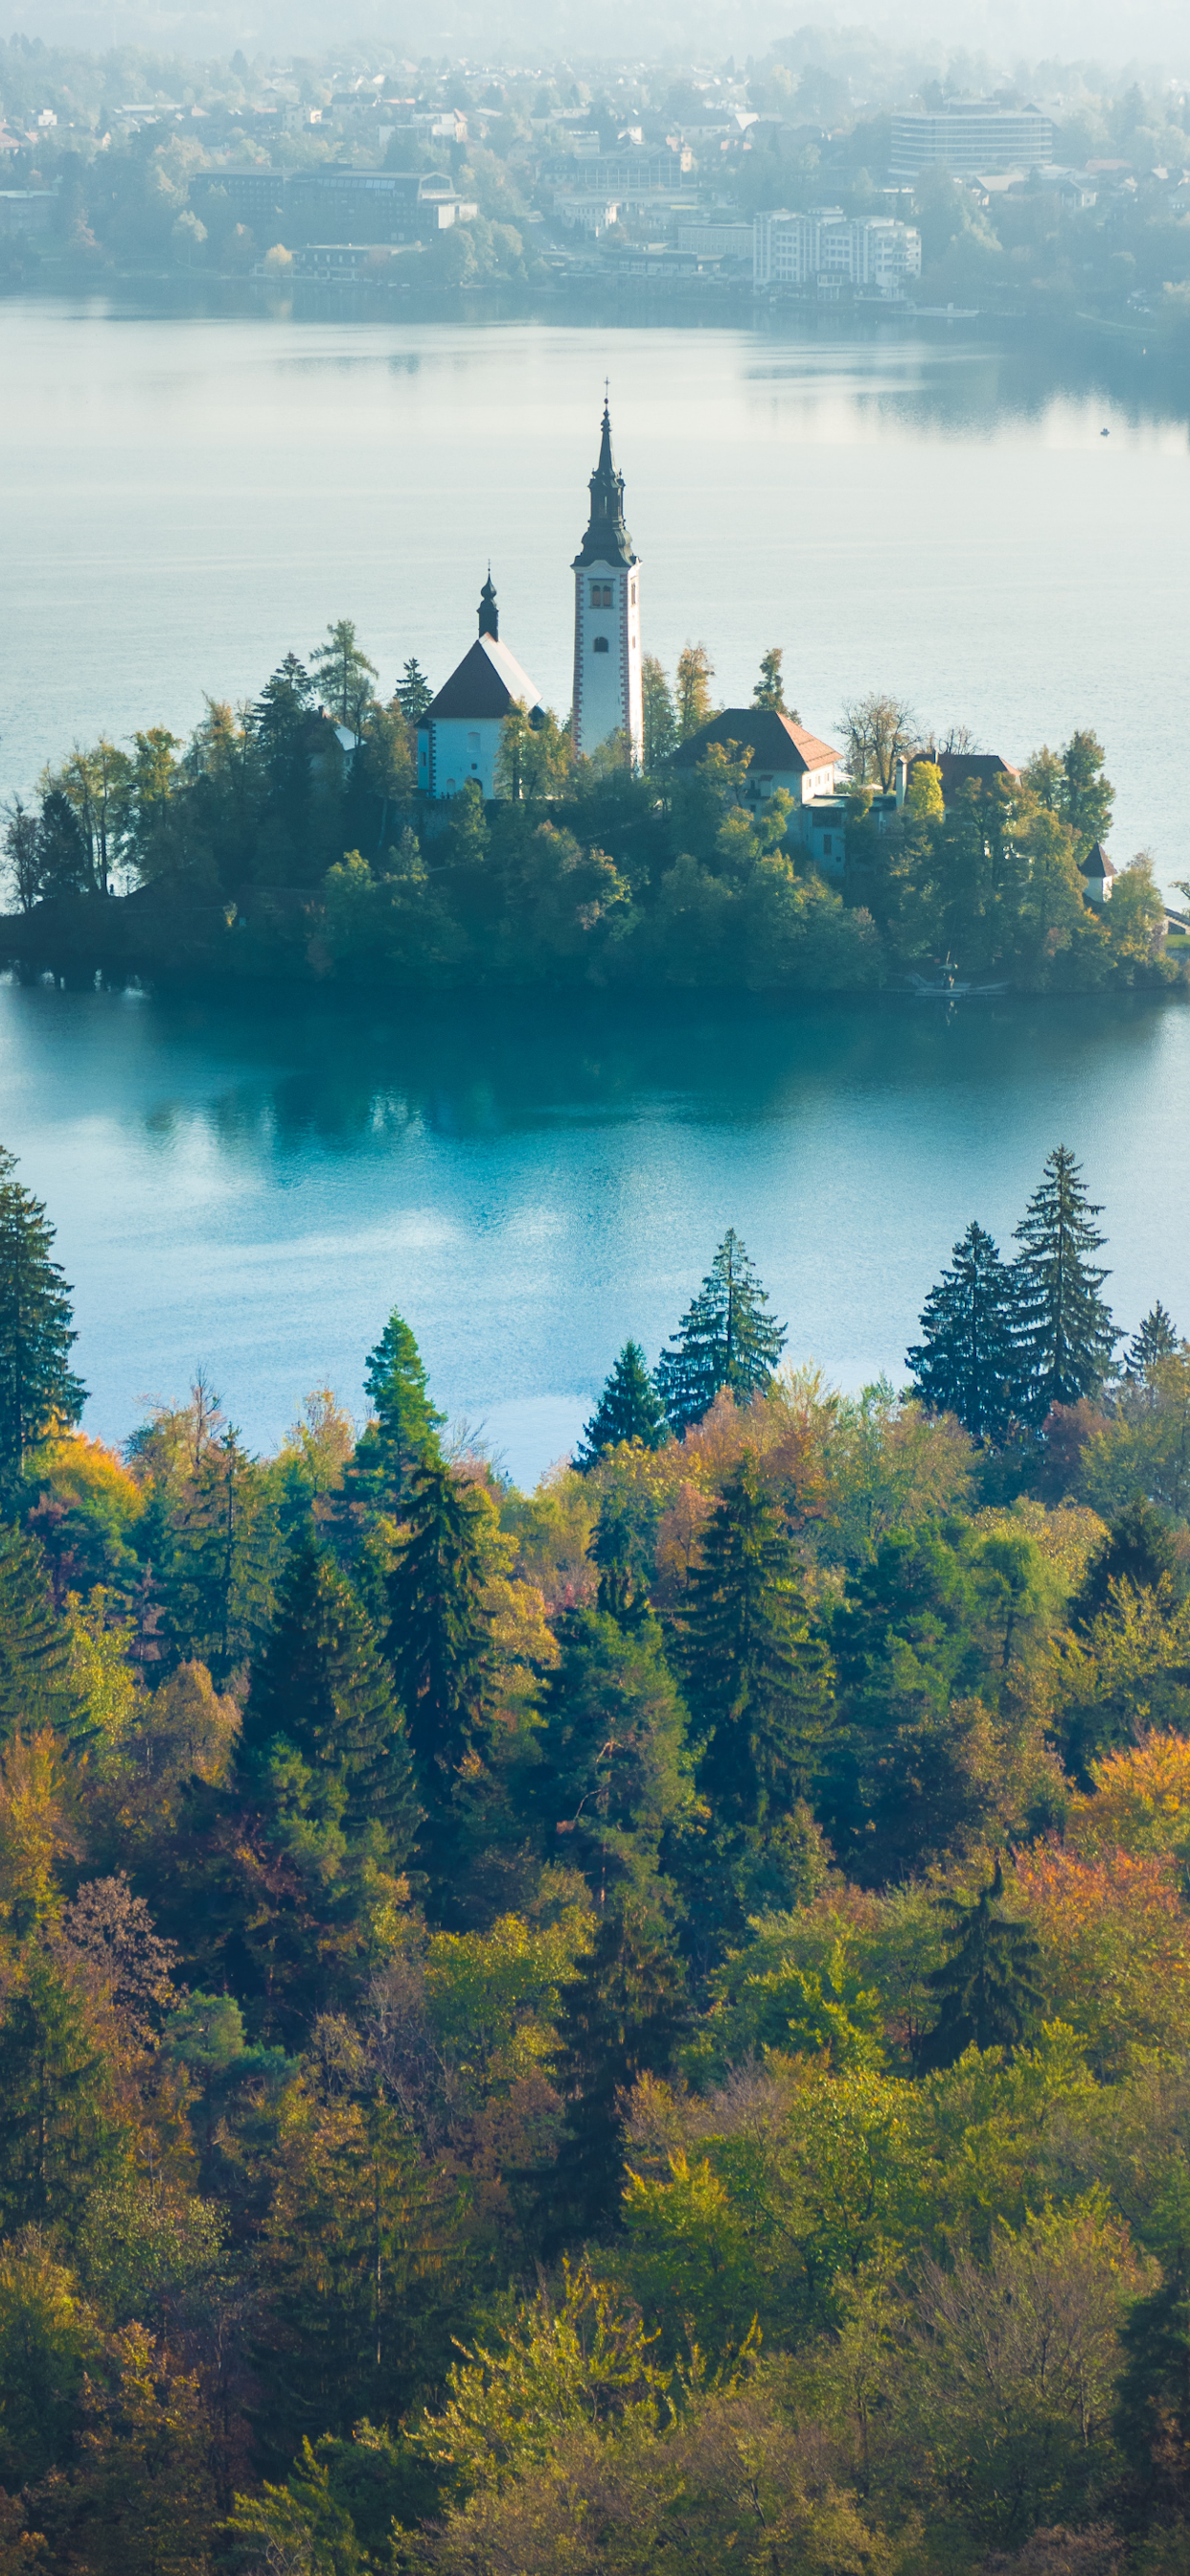 iPhone wallpapers lake bled trees Lake Bled